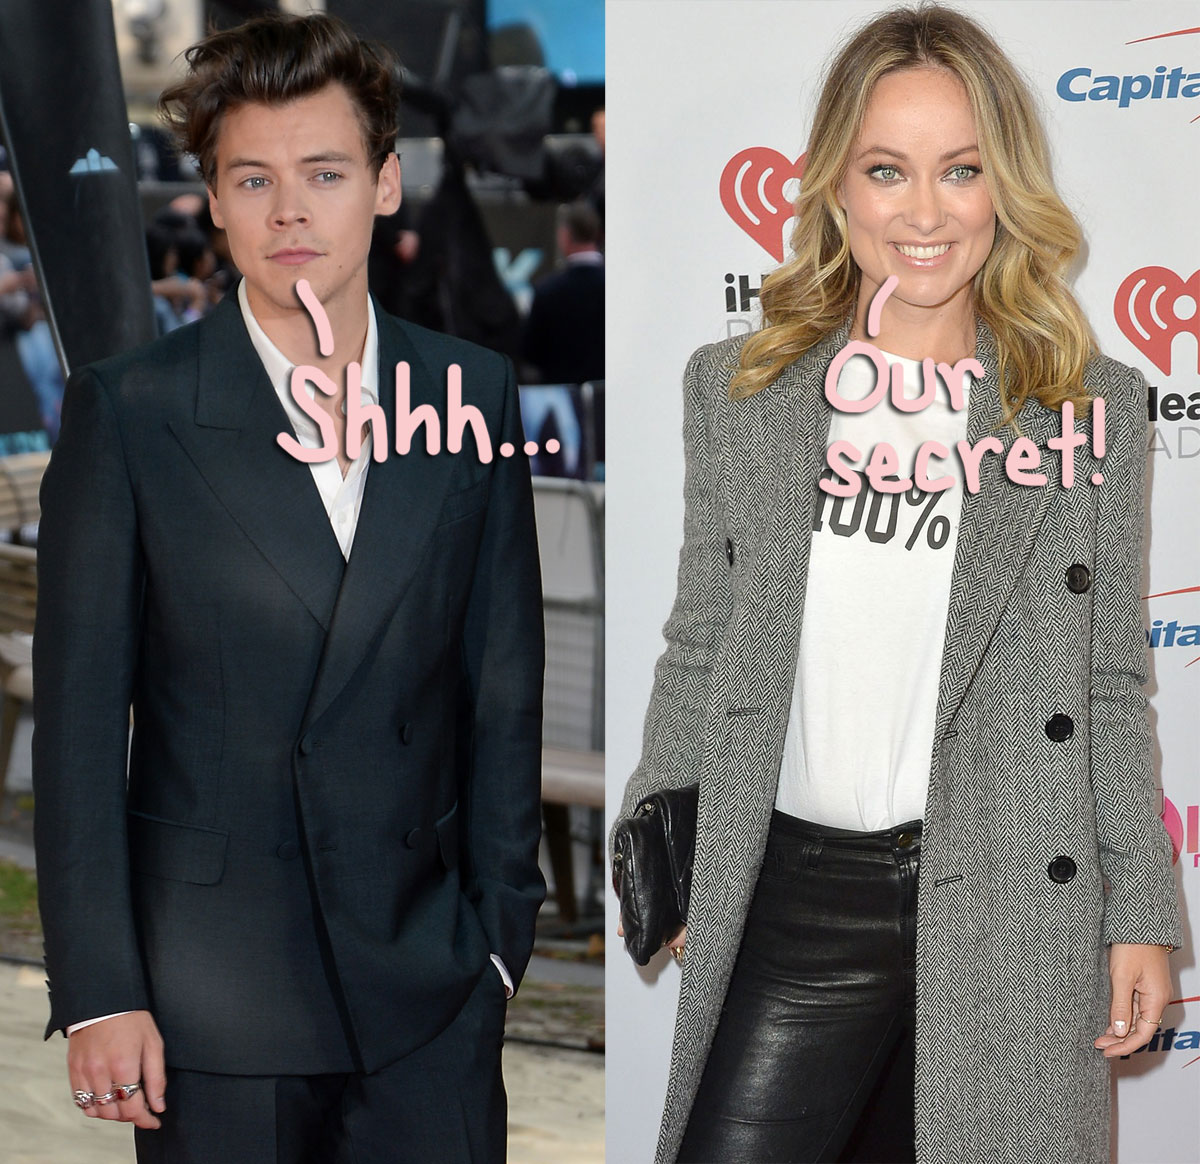 Olivia Wilde & Harry Styles Were Reportedly 'Very Careful' About Their Relationship While Working Together!